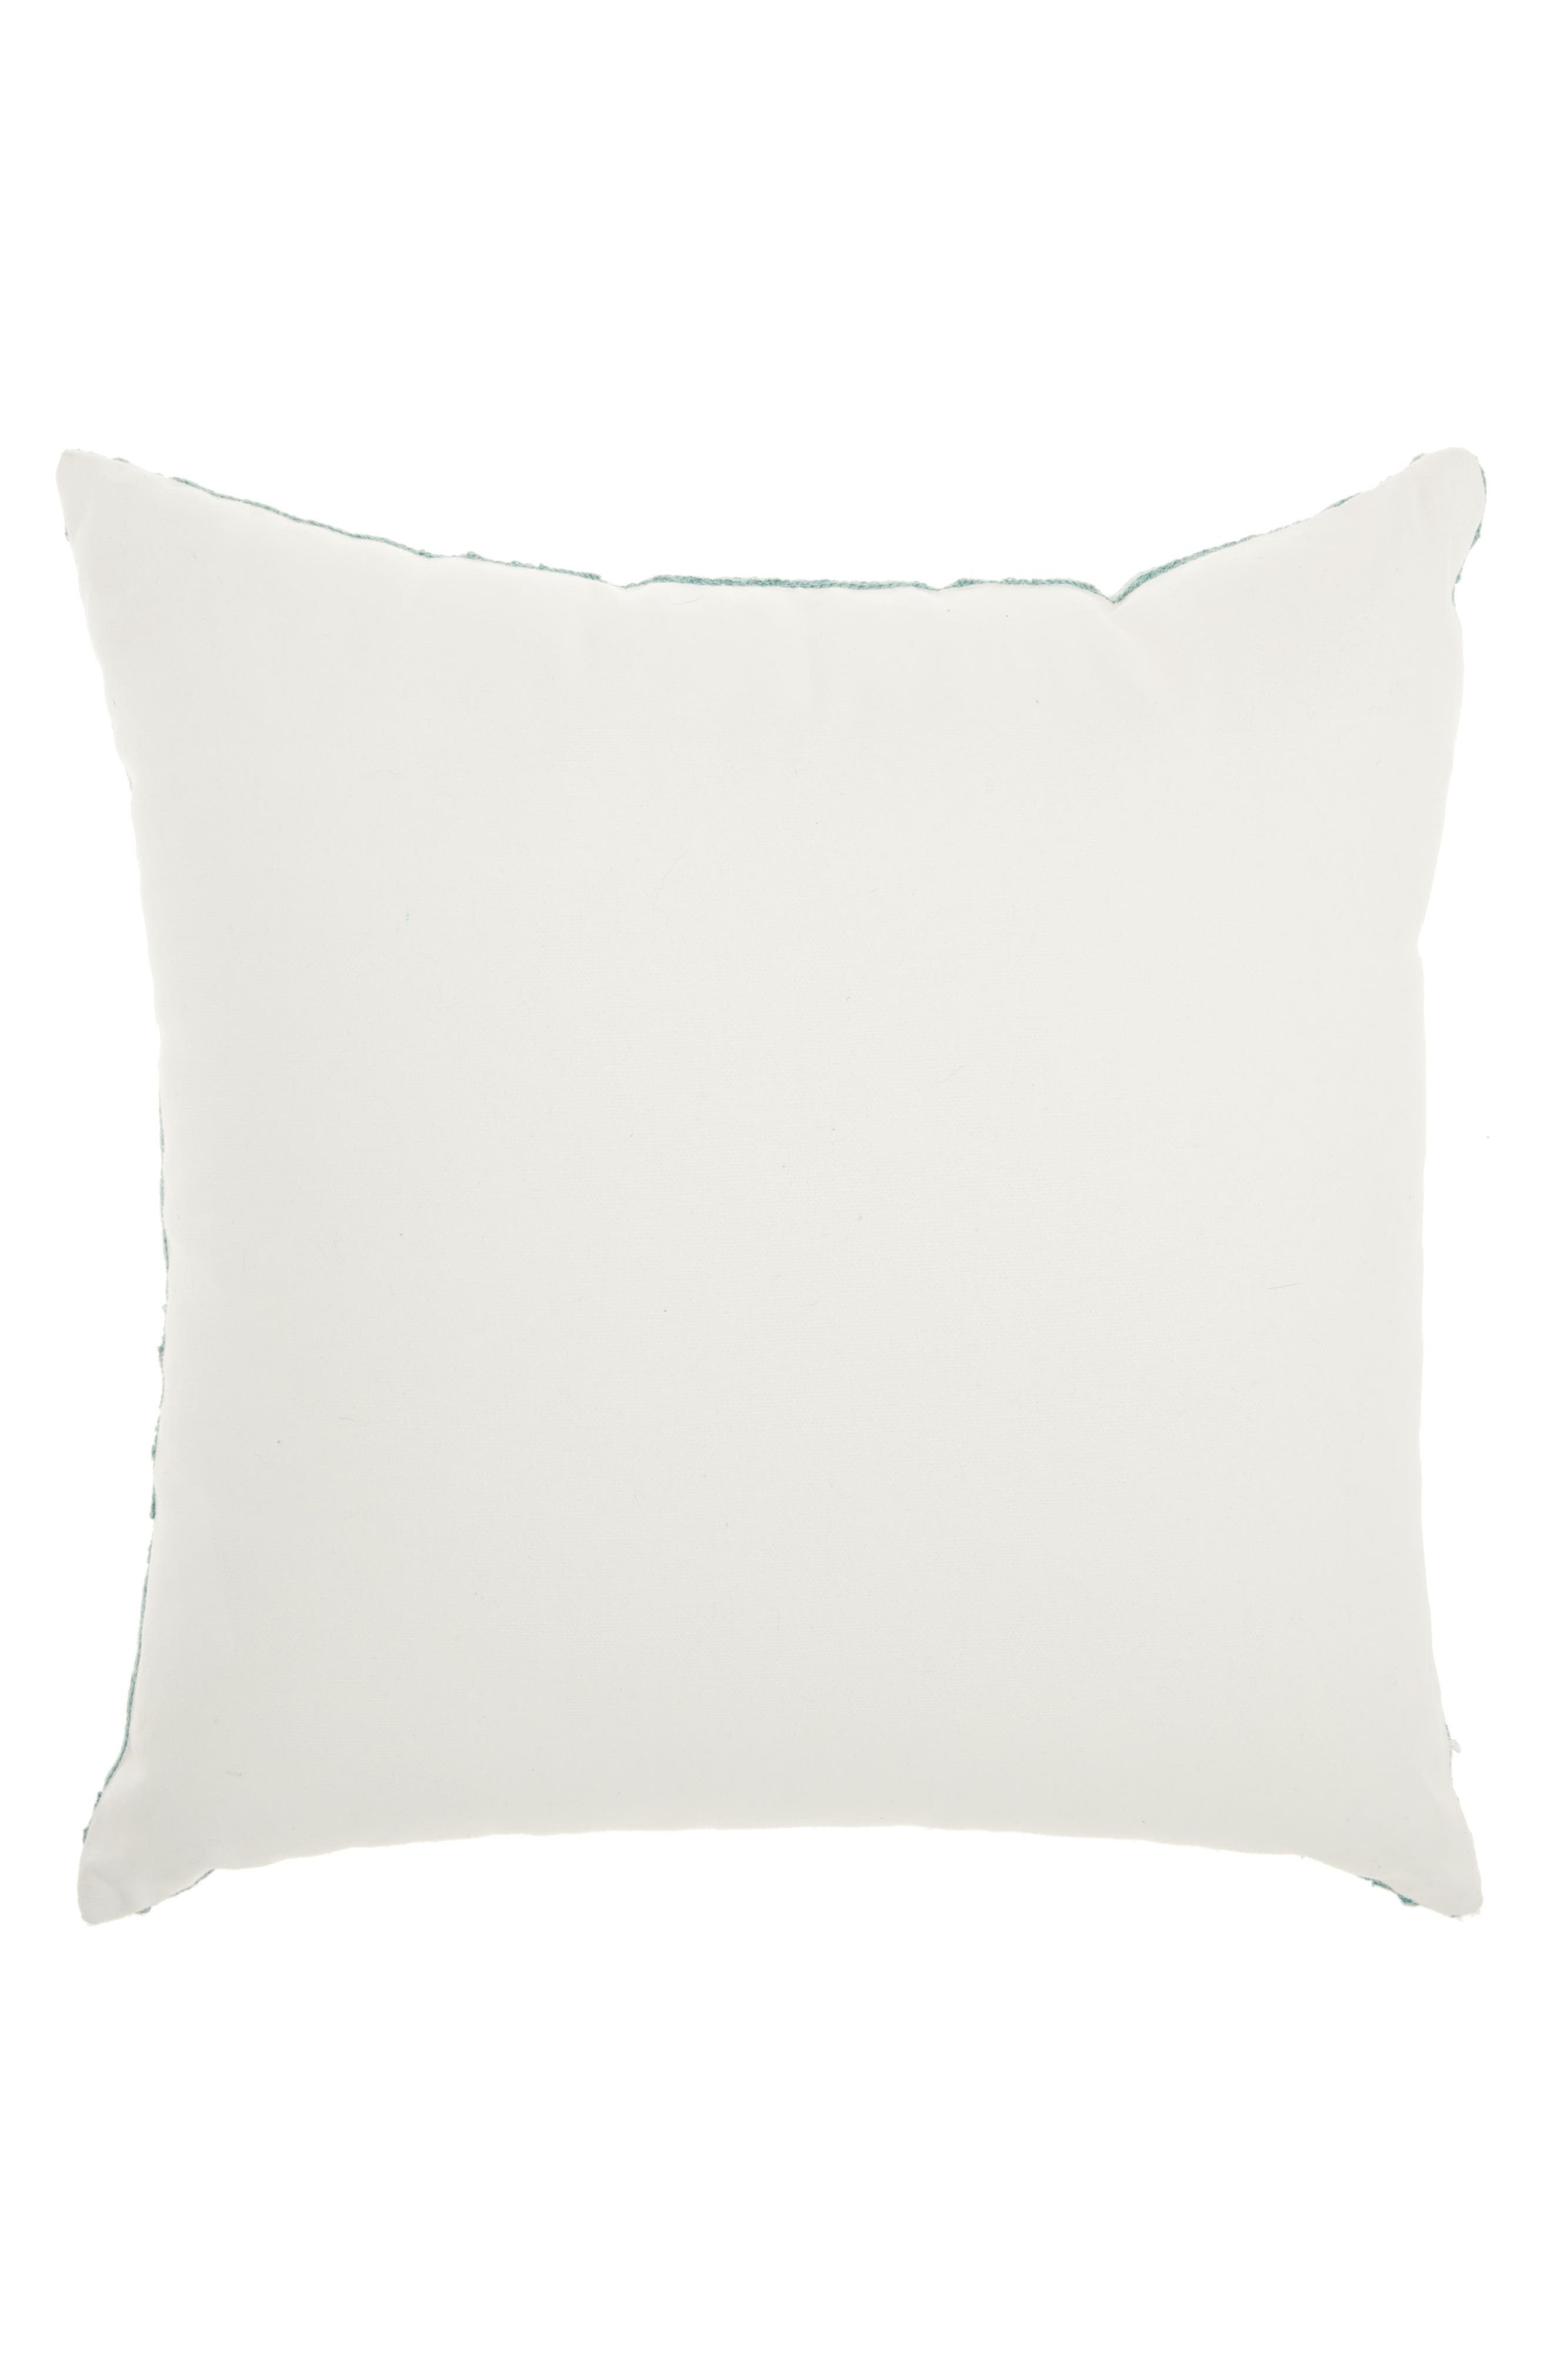 Tile Embroidered Accent Pillow,                             Alternate thumbnail 2, color,                             332